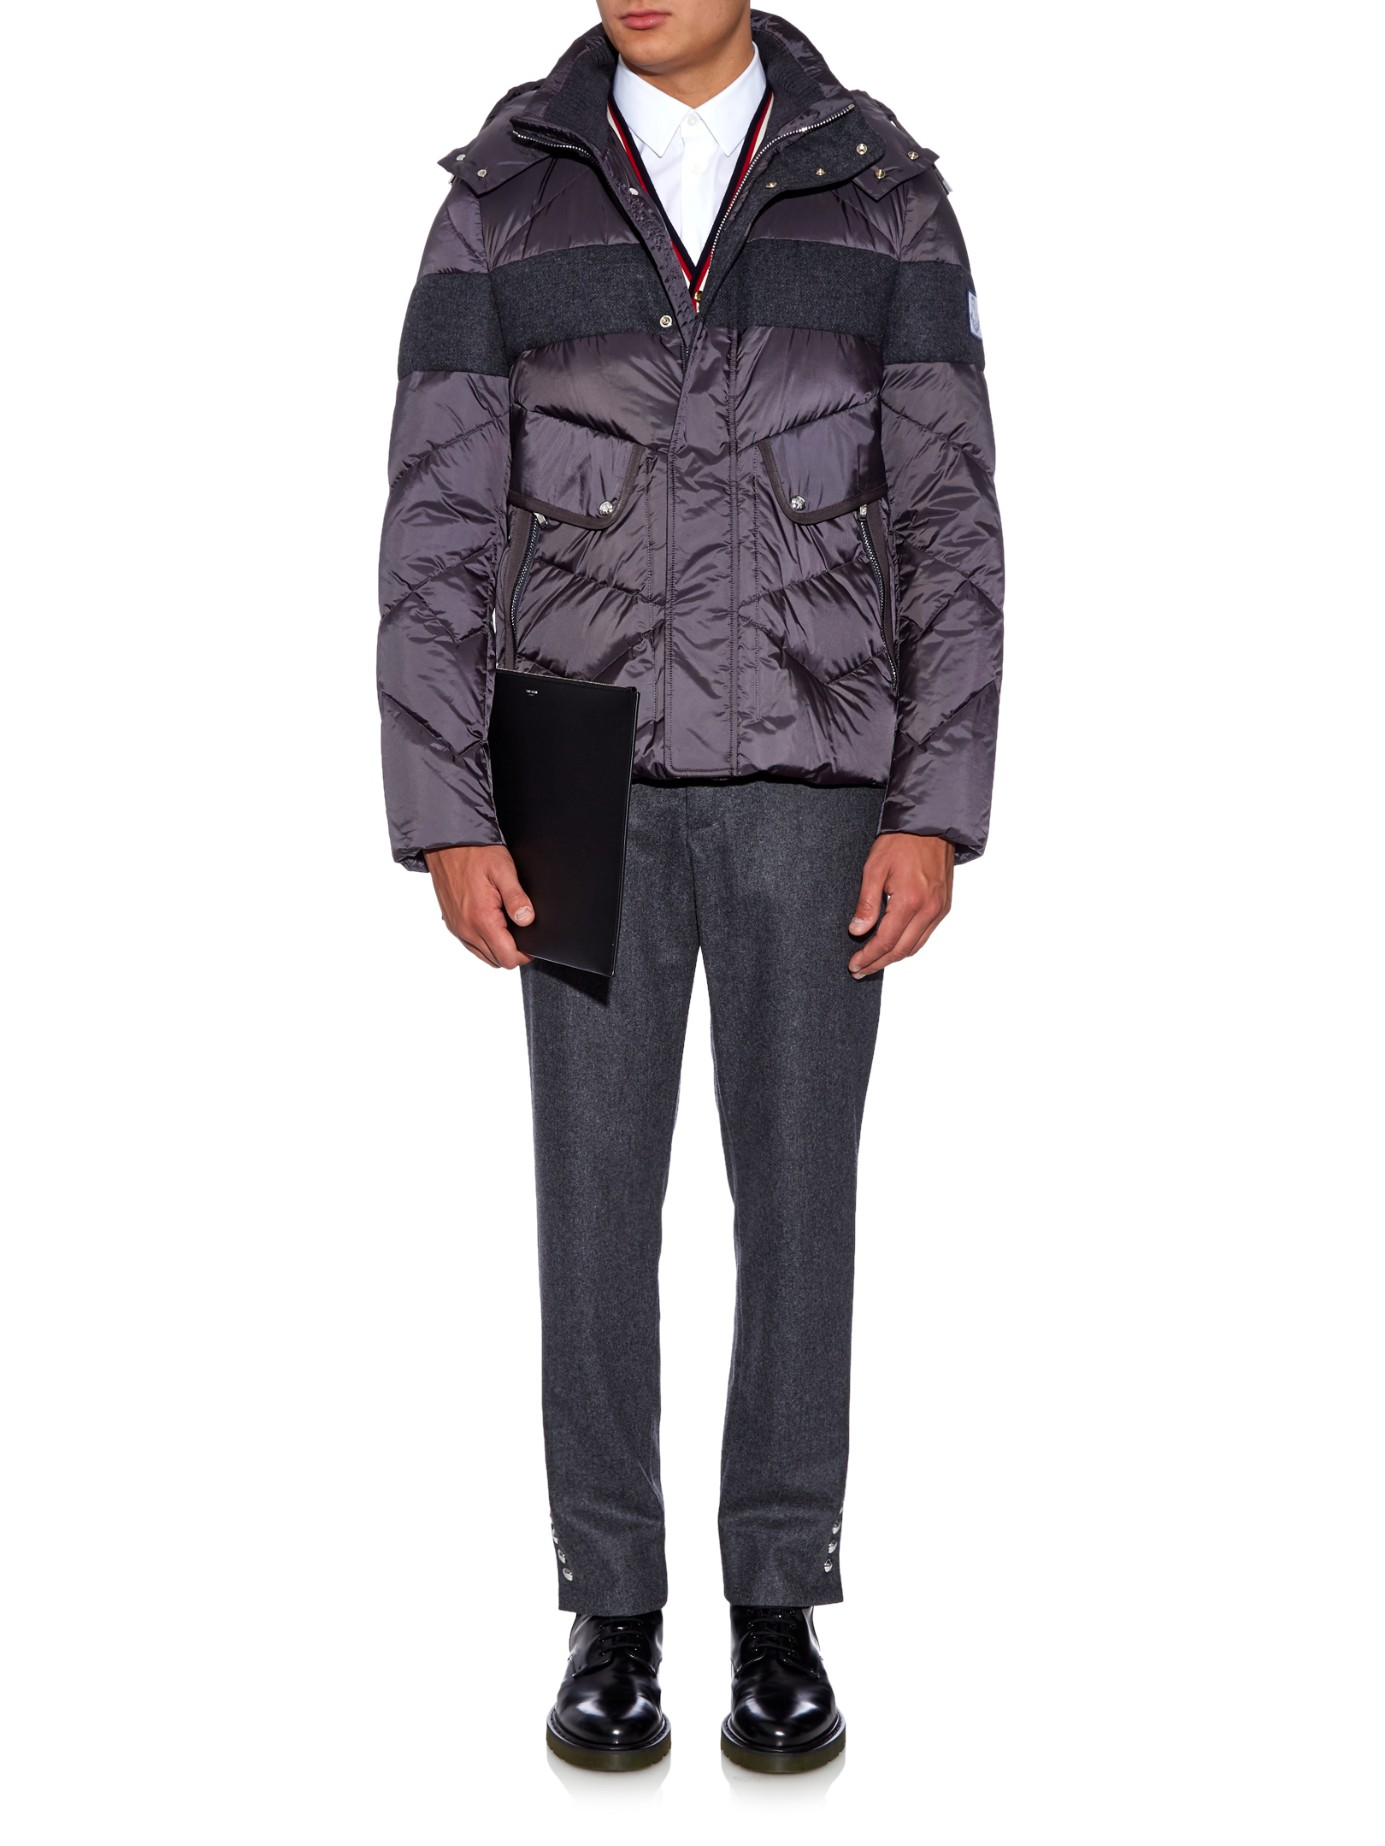 Moncler Gamme Bleu Quilted-down Wool-panel Jacket in Charcoal (Grey) for Men